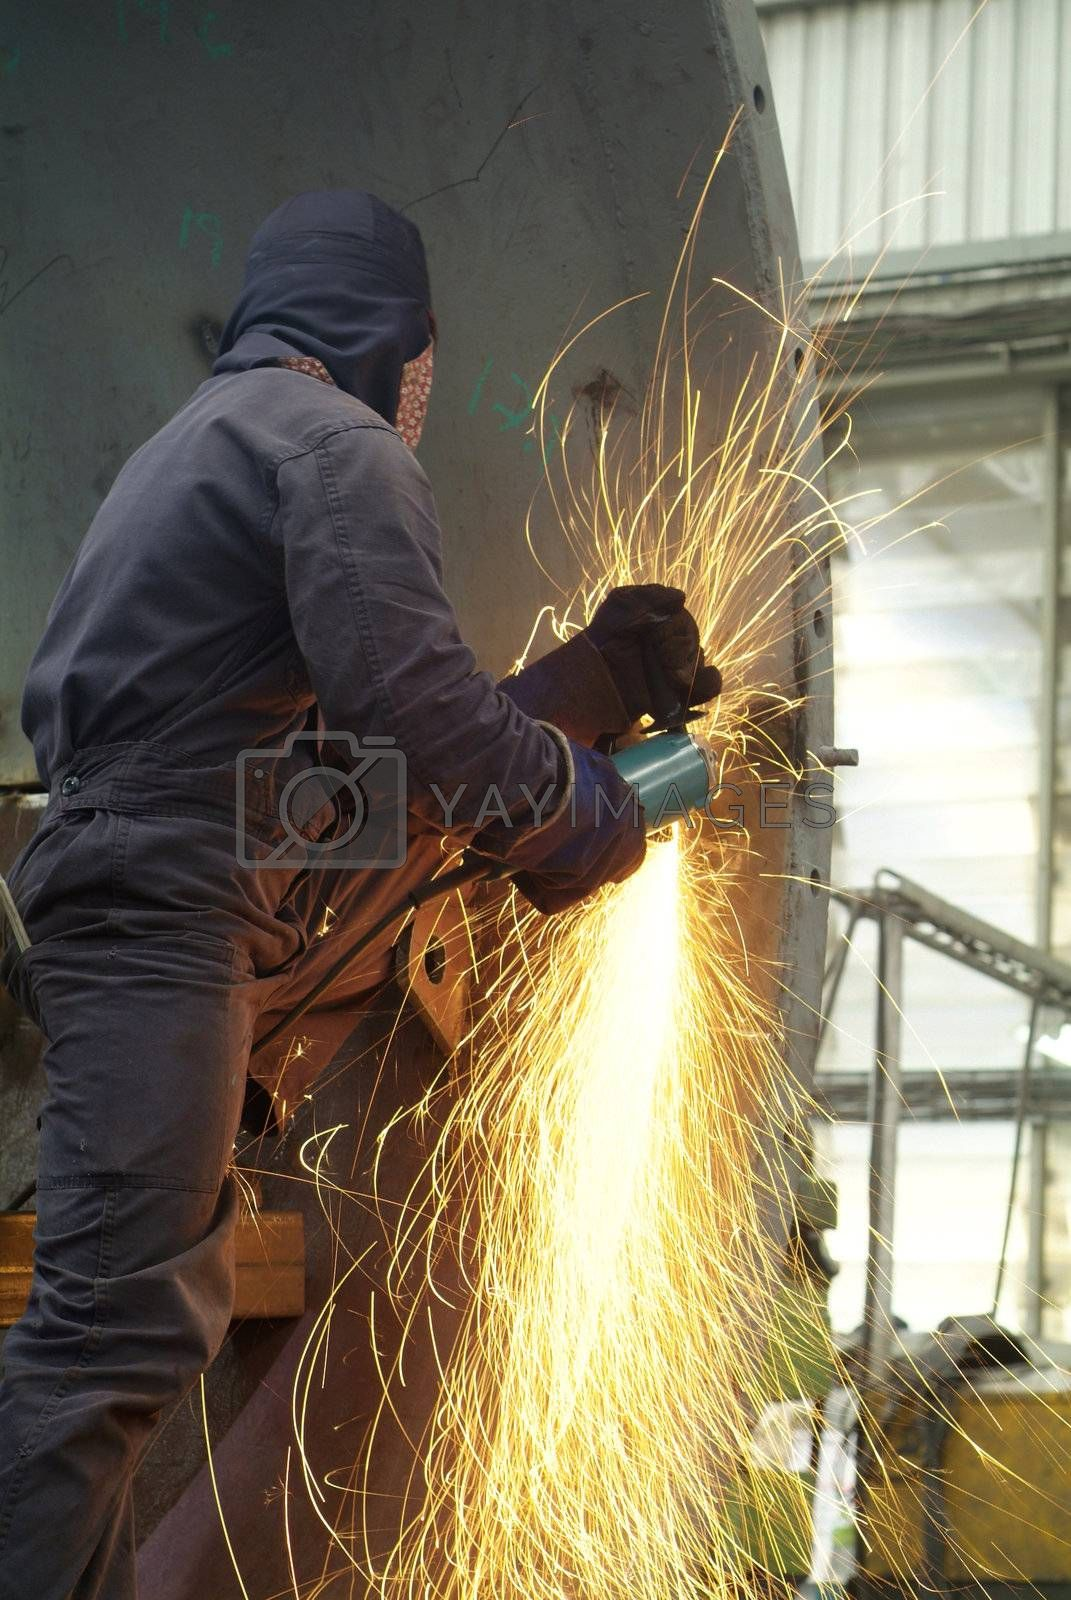 Man working with angle grinder by epixx